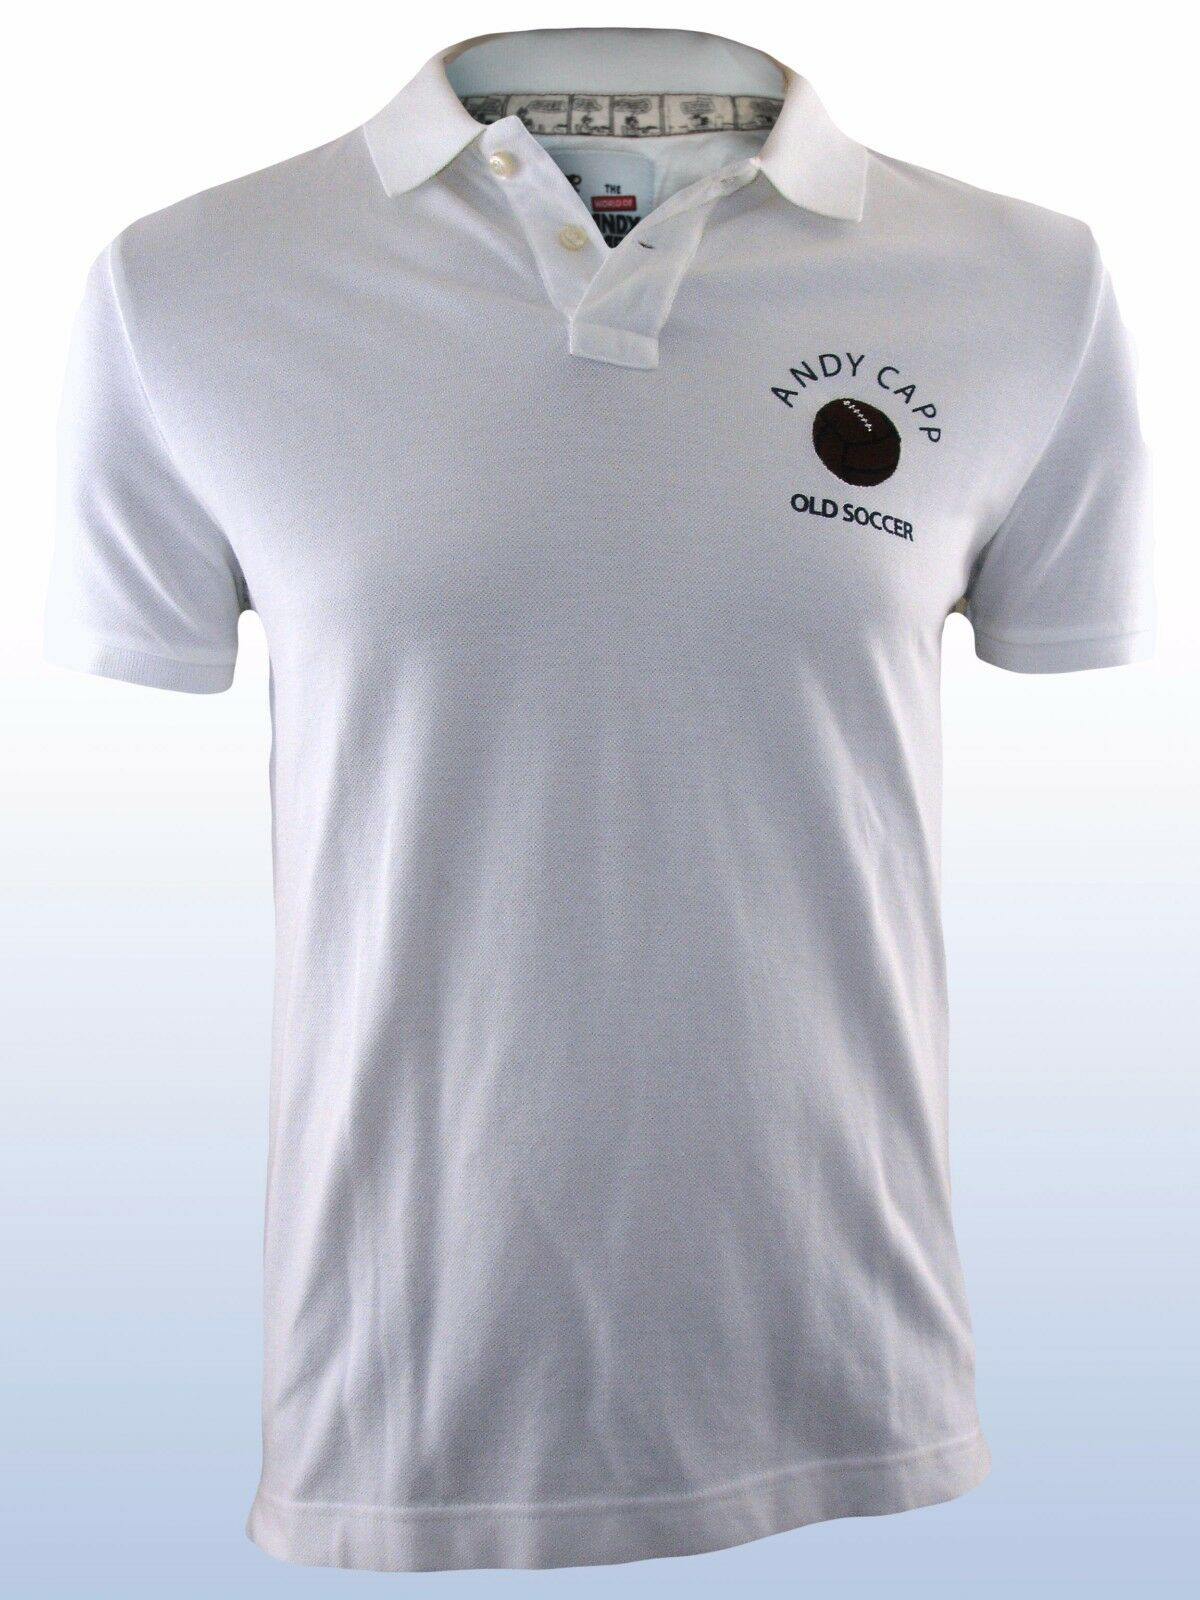 Polo uomo bianco ANDY CAPP official product tg m medium manica corta